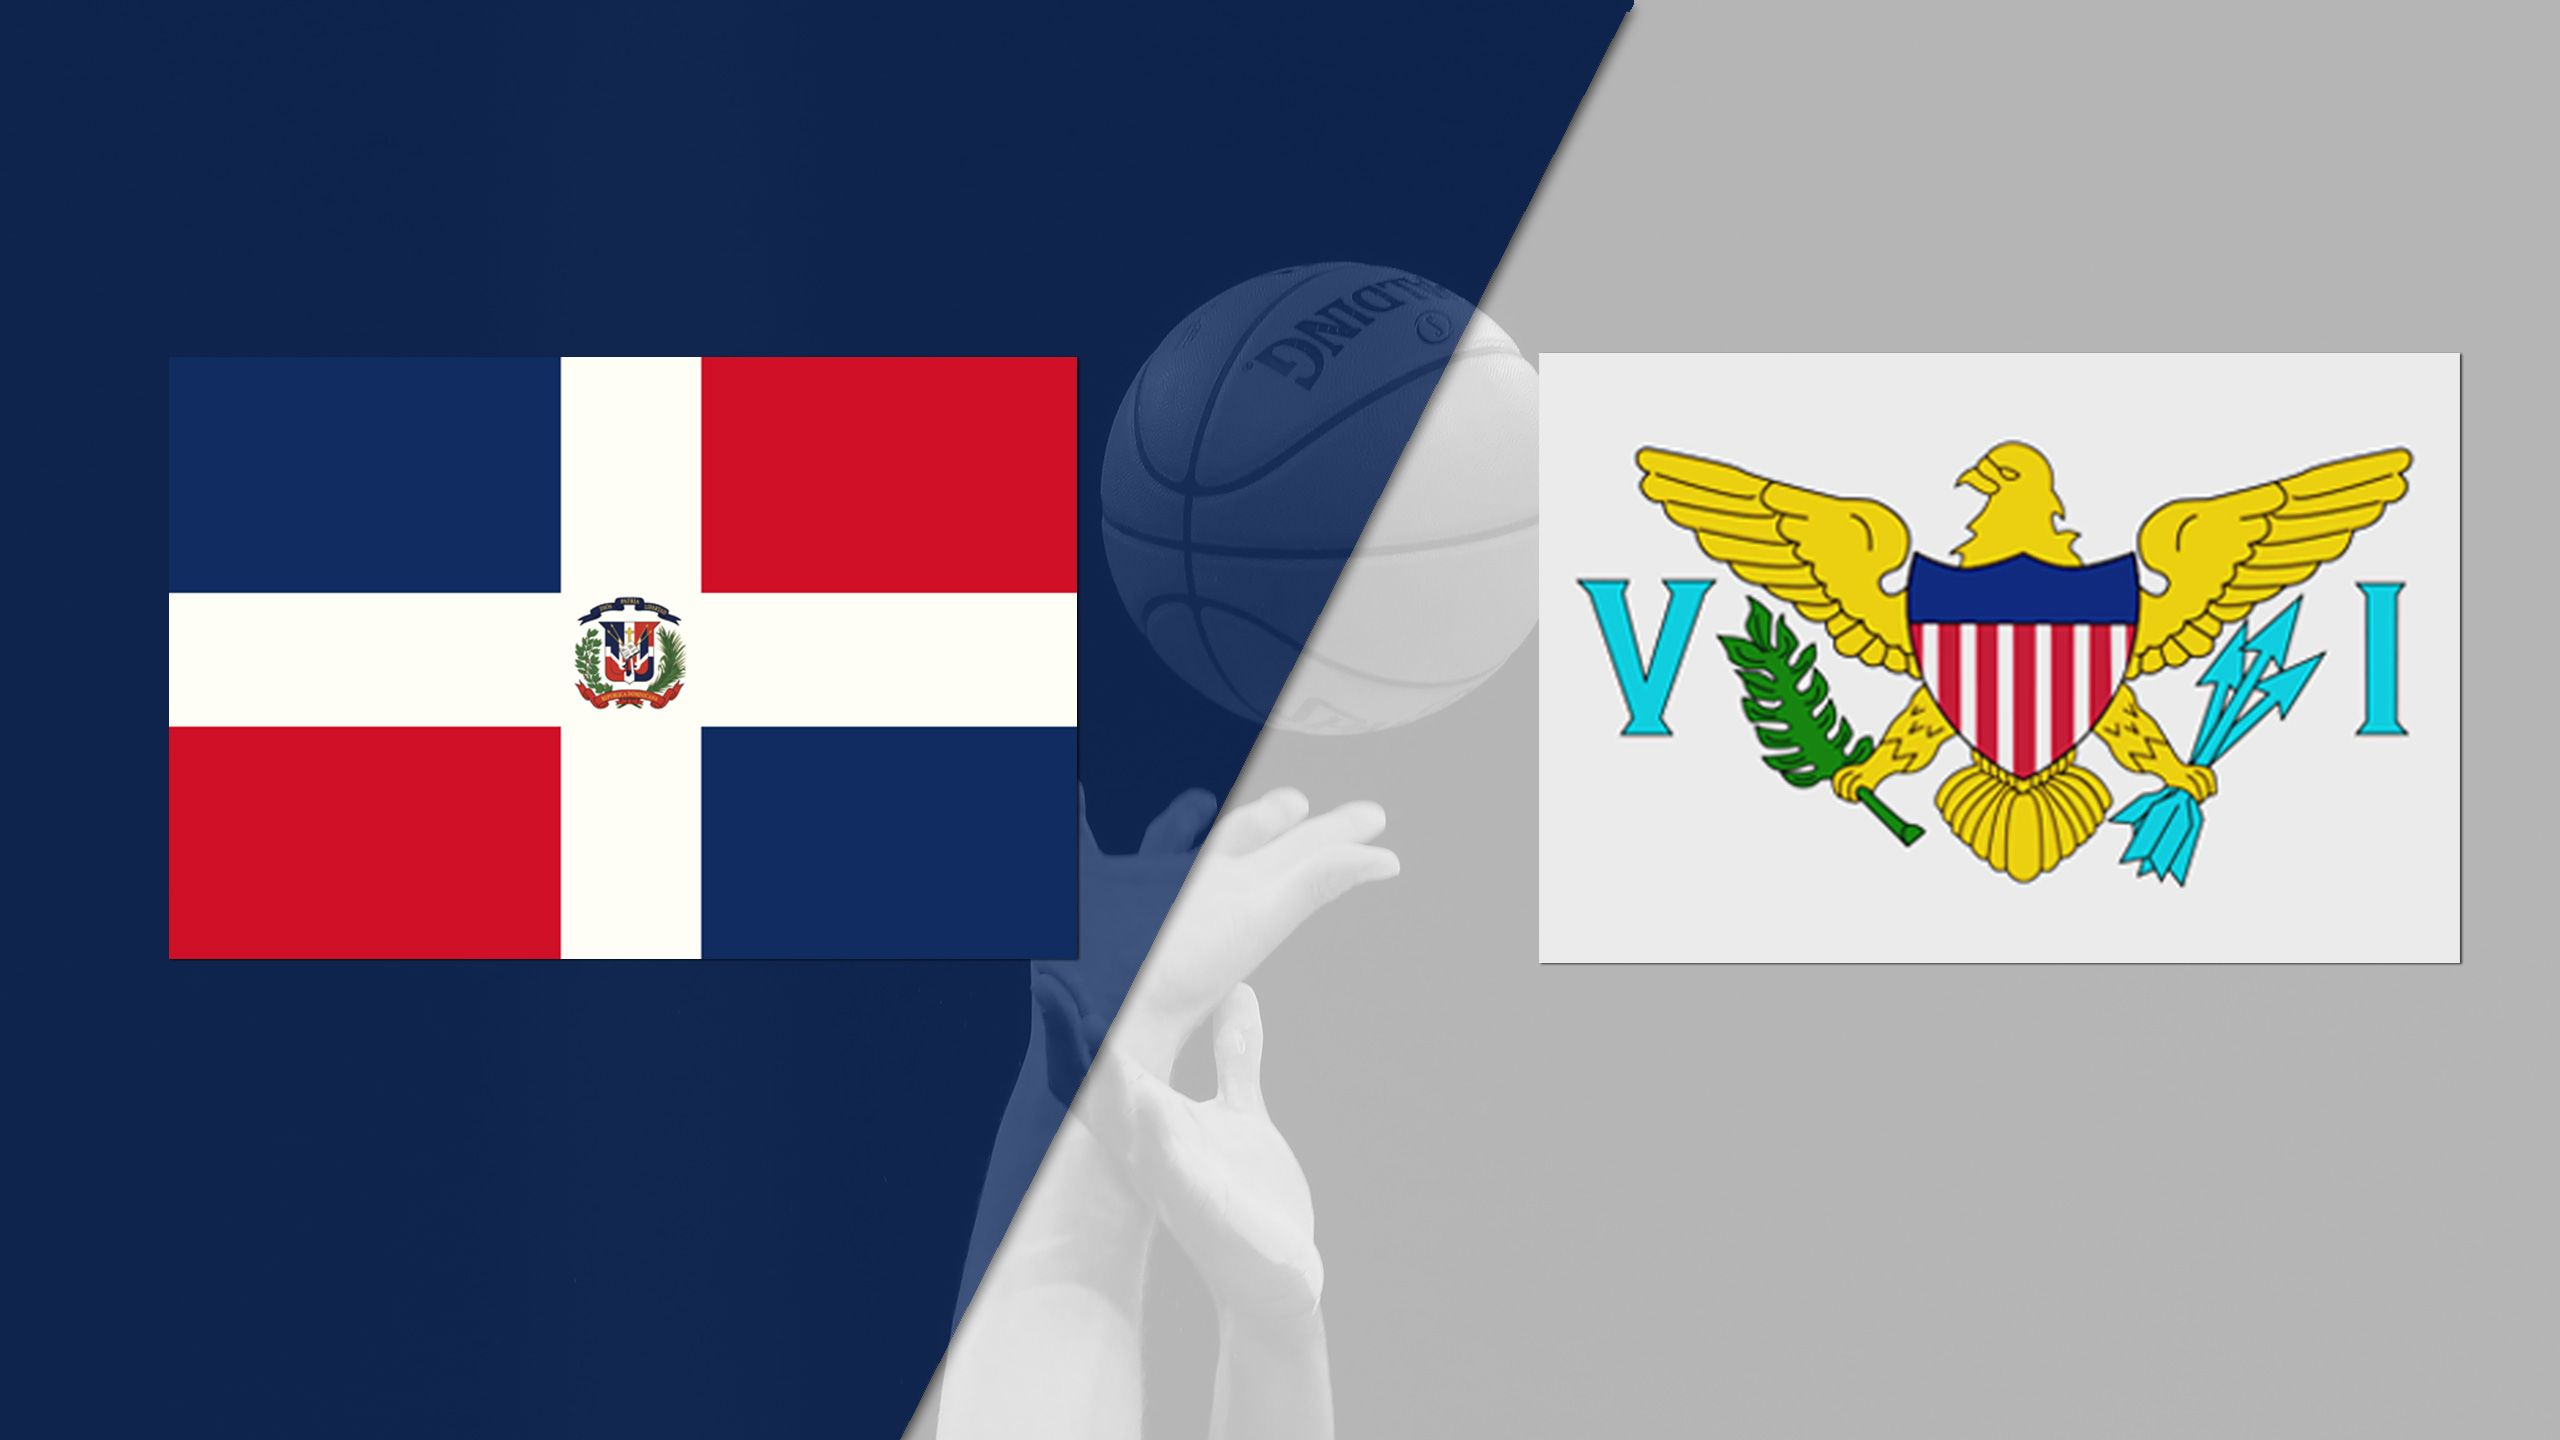 Dominican Republic vs. Virgin Islands (FIBA World Cup 2019 Qualifier)